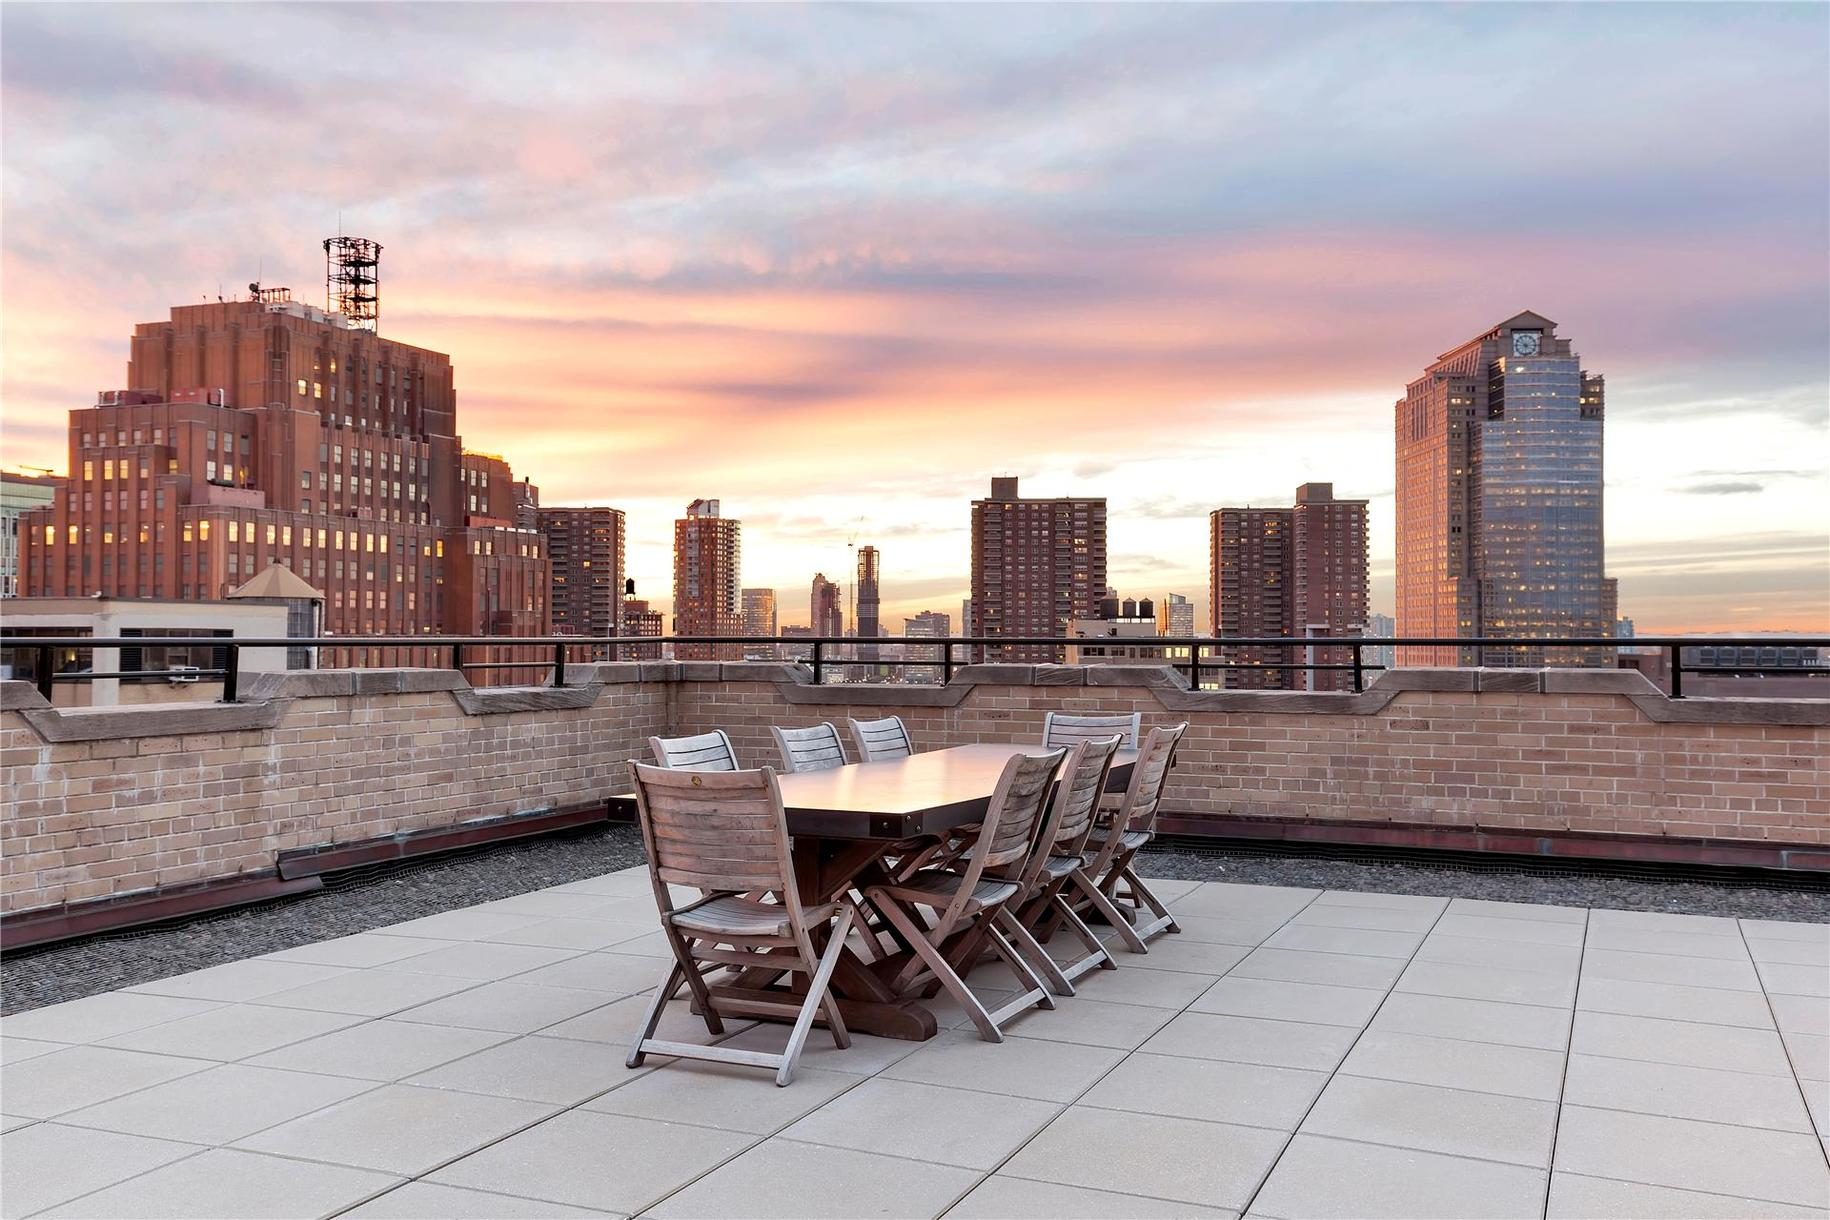 90 Franklin Street, Franklin Tower, Tribeca, trophy condo, Cool Listings, Isabel Rose, Rose Associates, Mariah Carey